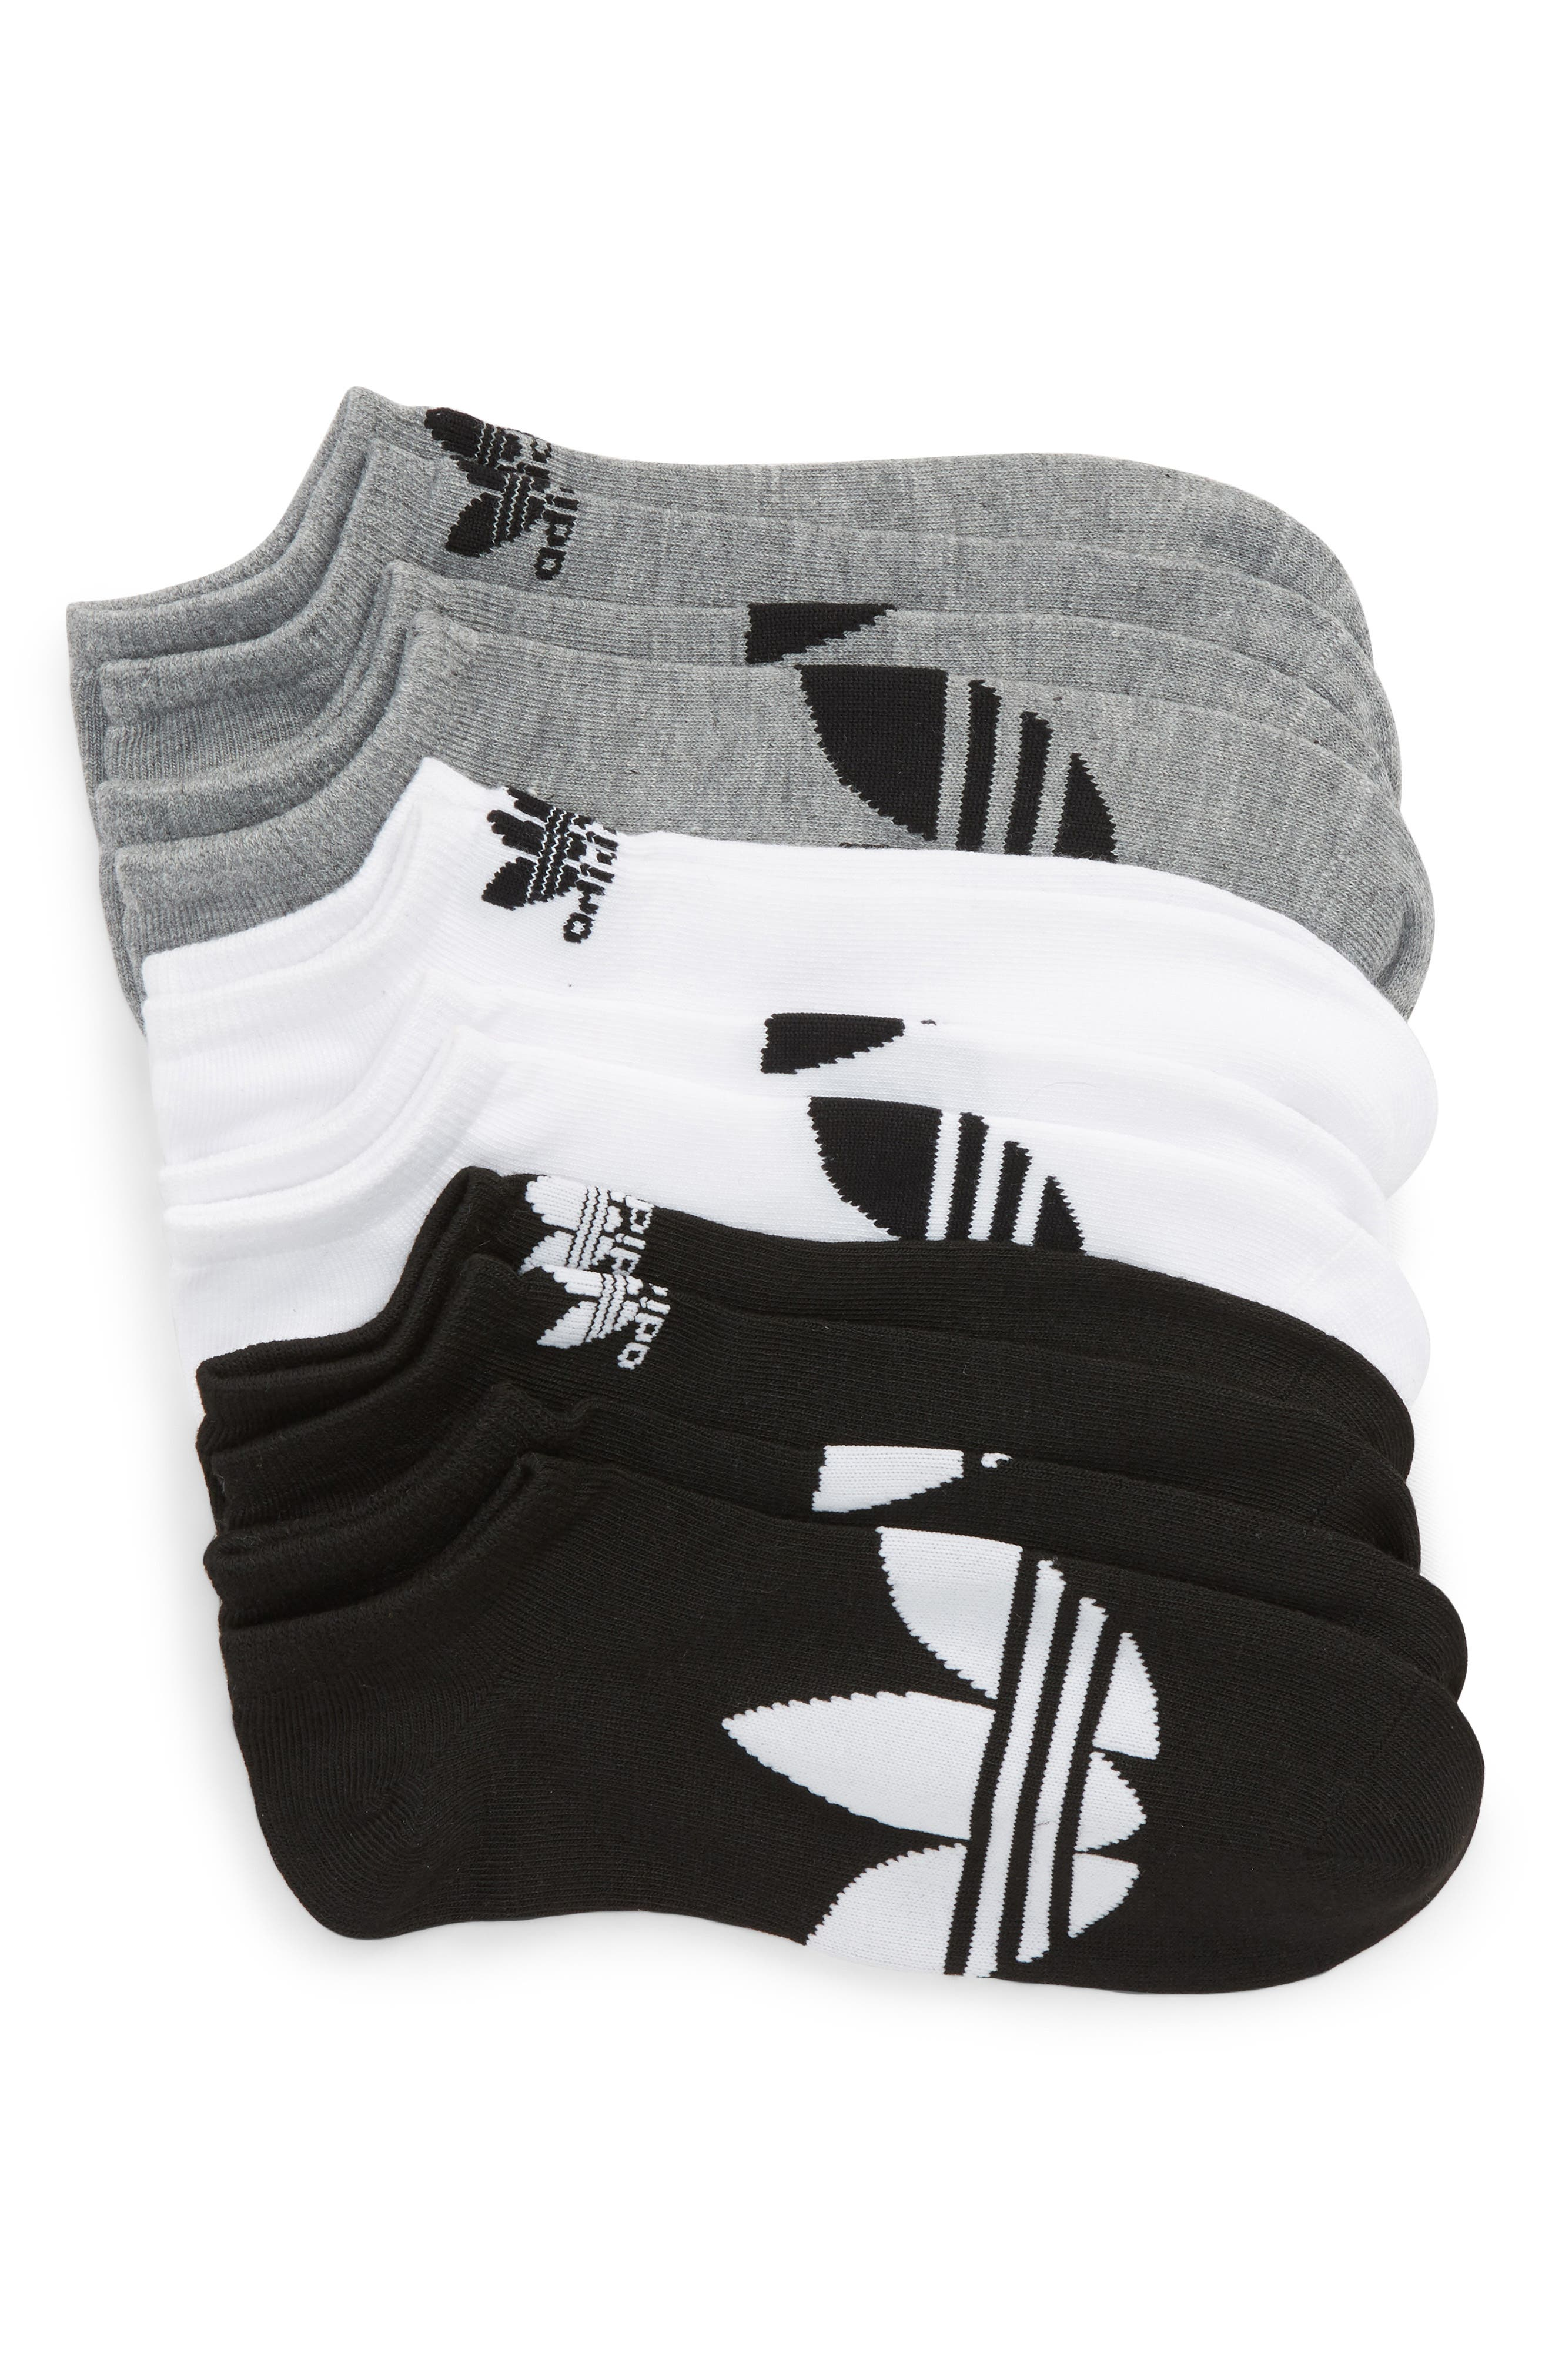 6-Pack No-Show Socks, Main, color, BLACK/ WHITE/ HEATHER GREY